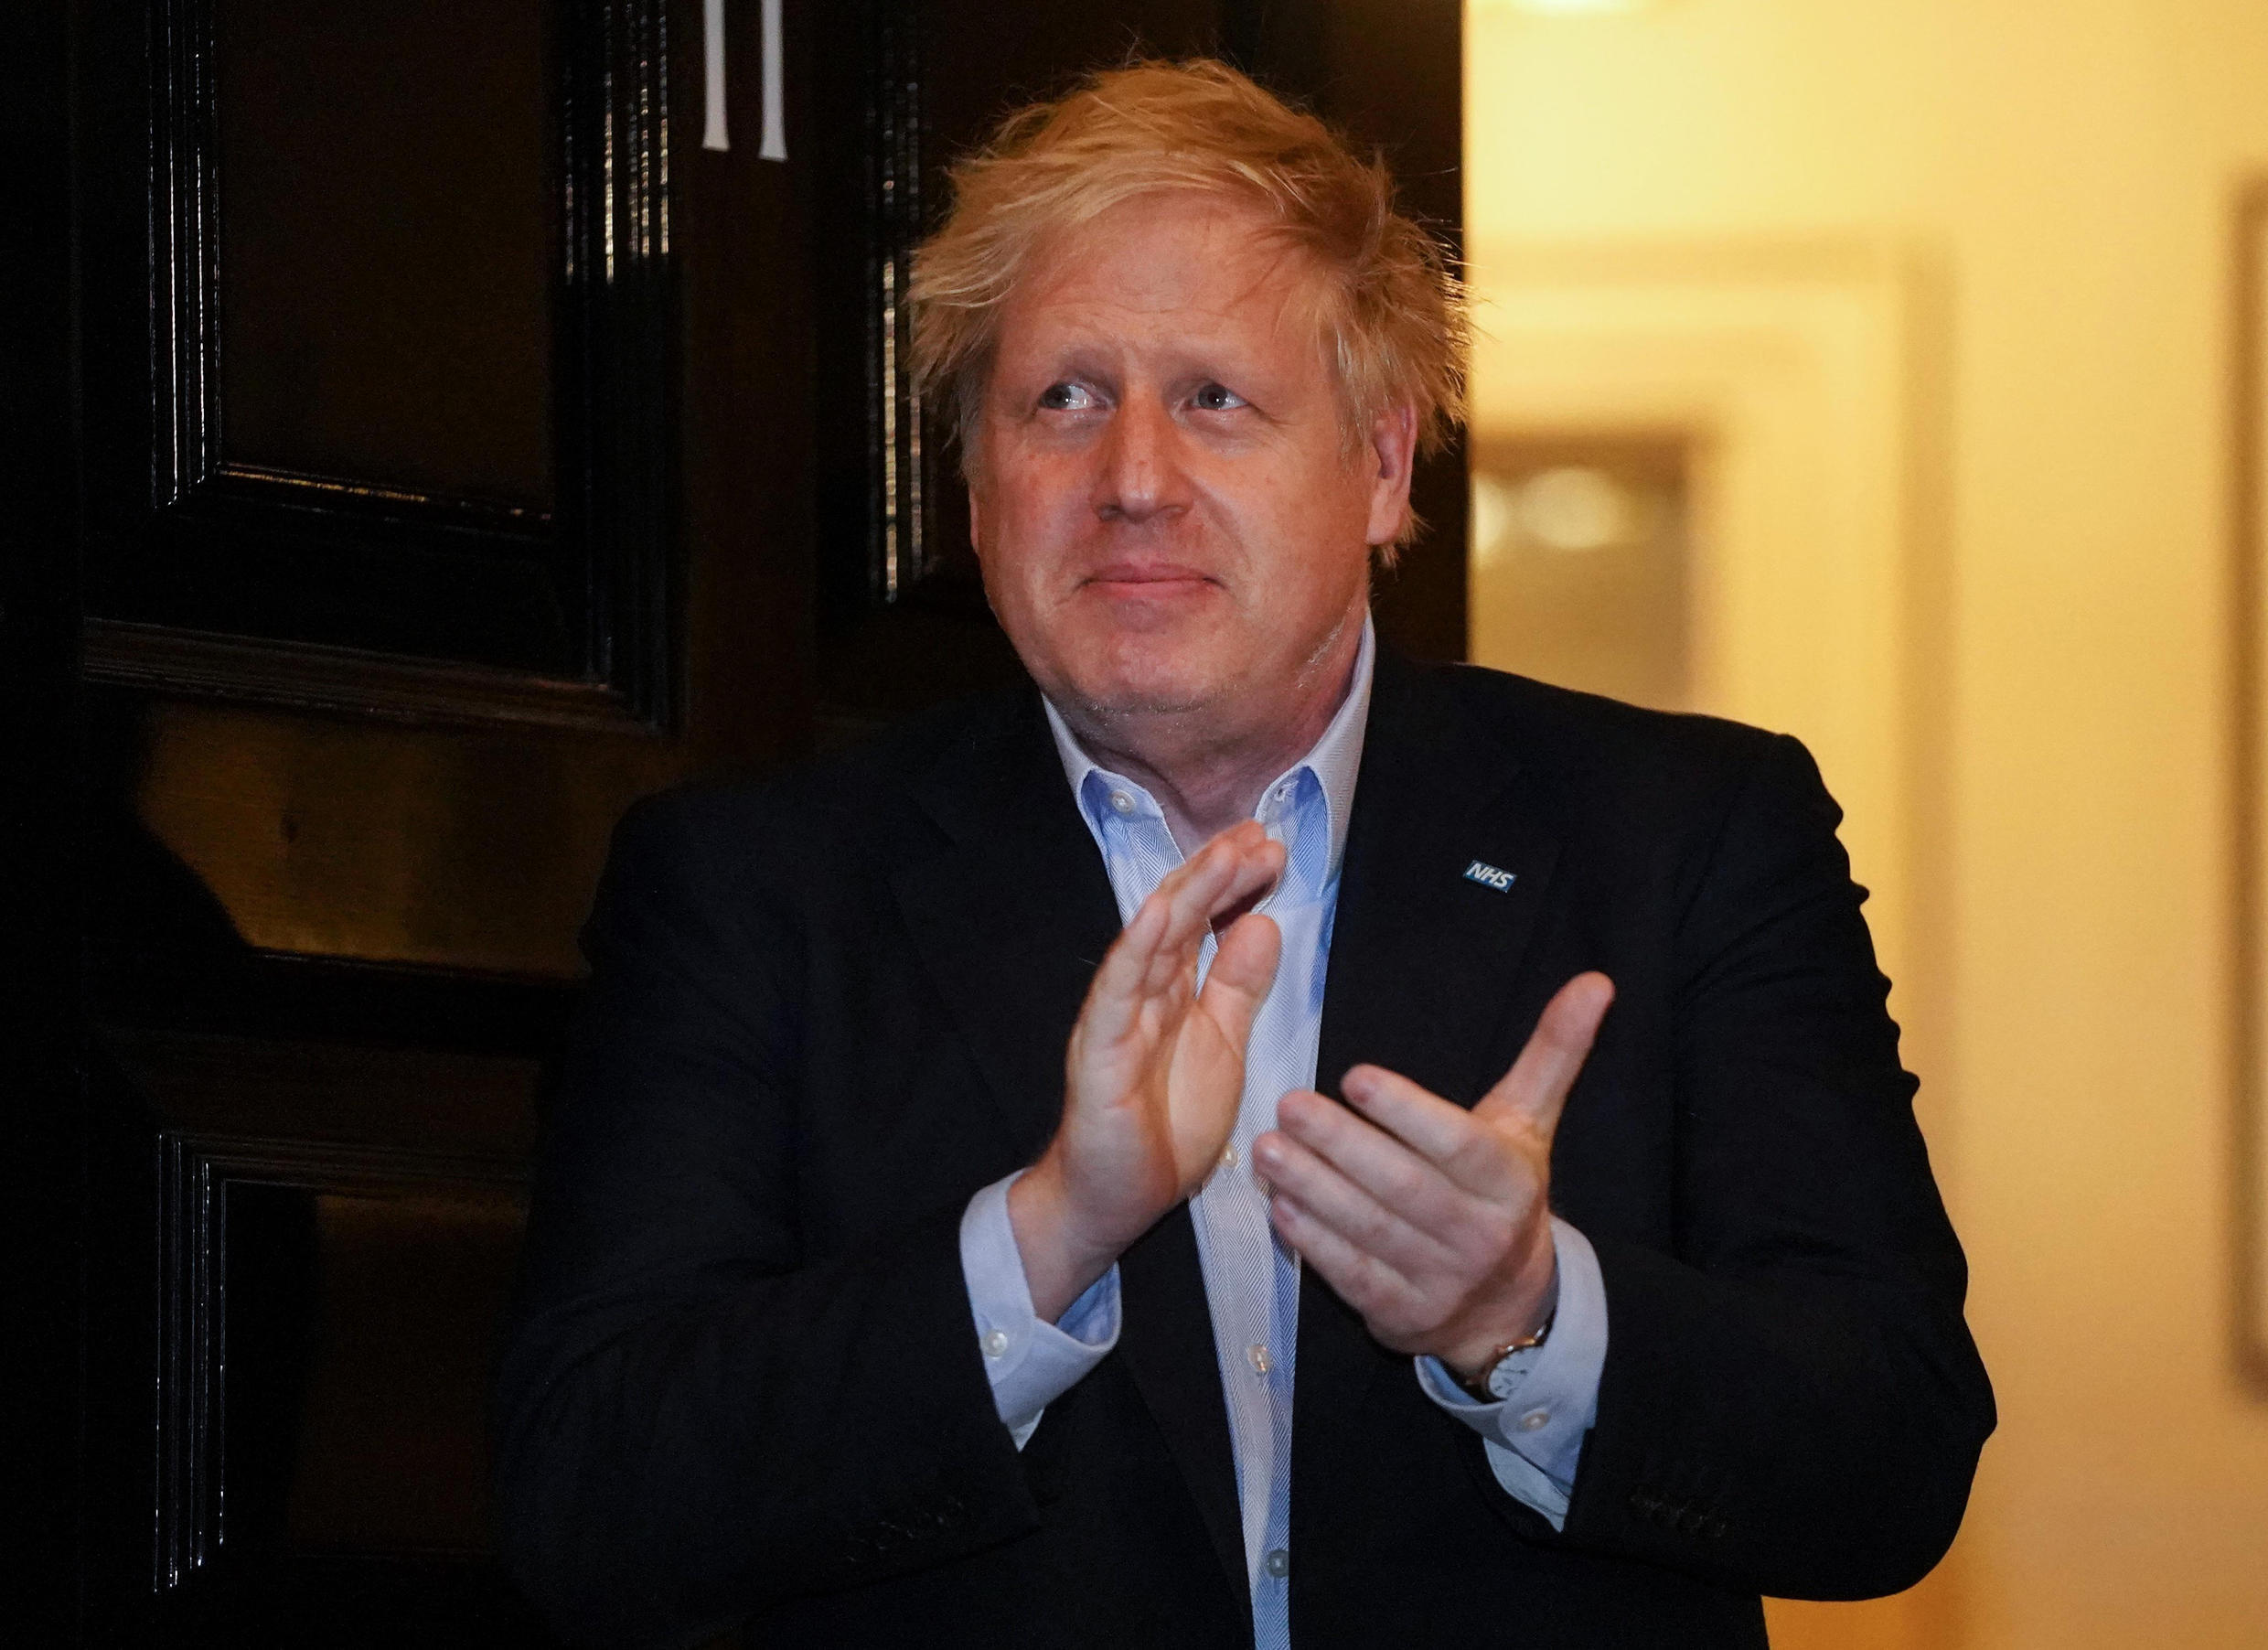 UK Prime Minister Boris Johnson announced on March 27 that he had tested positive for COVID-19 and has been self-isolating in his flat above Downing Street ever since.